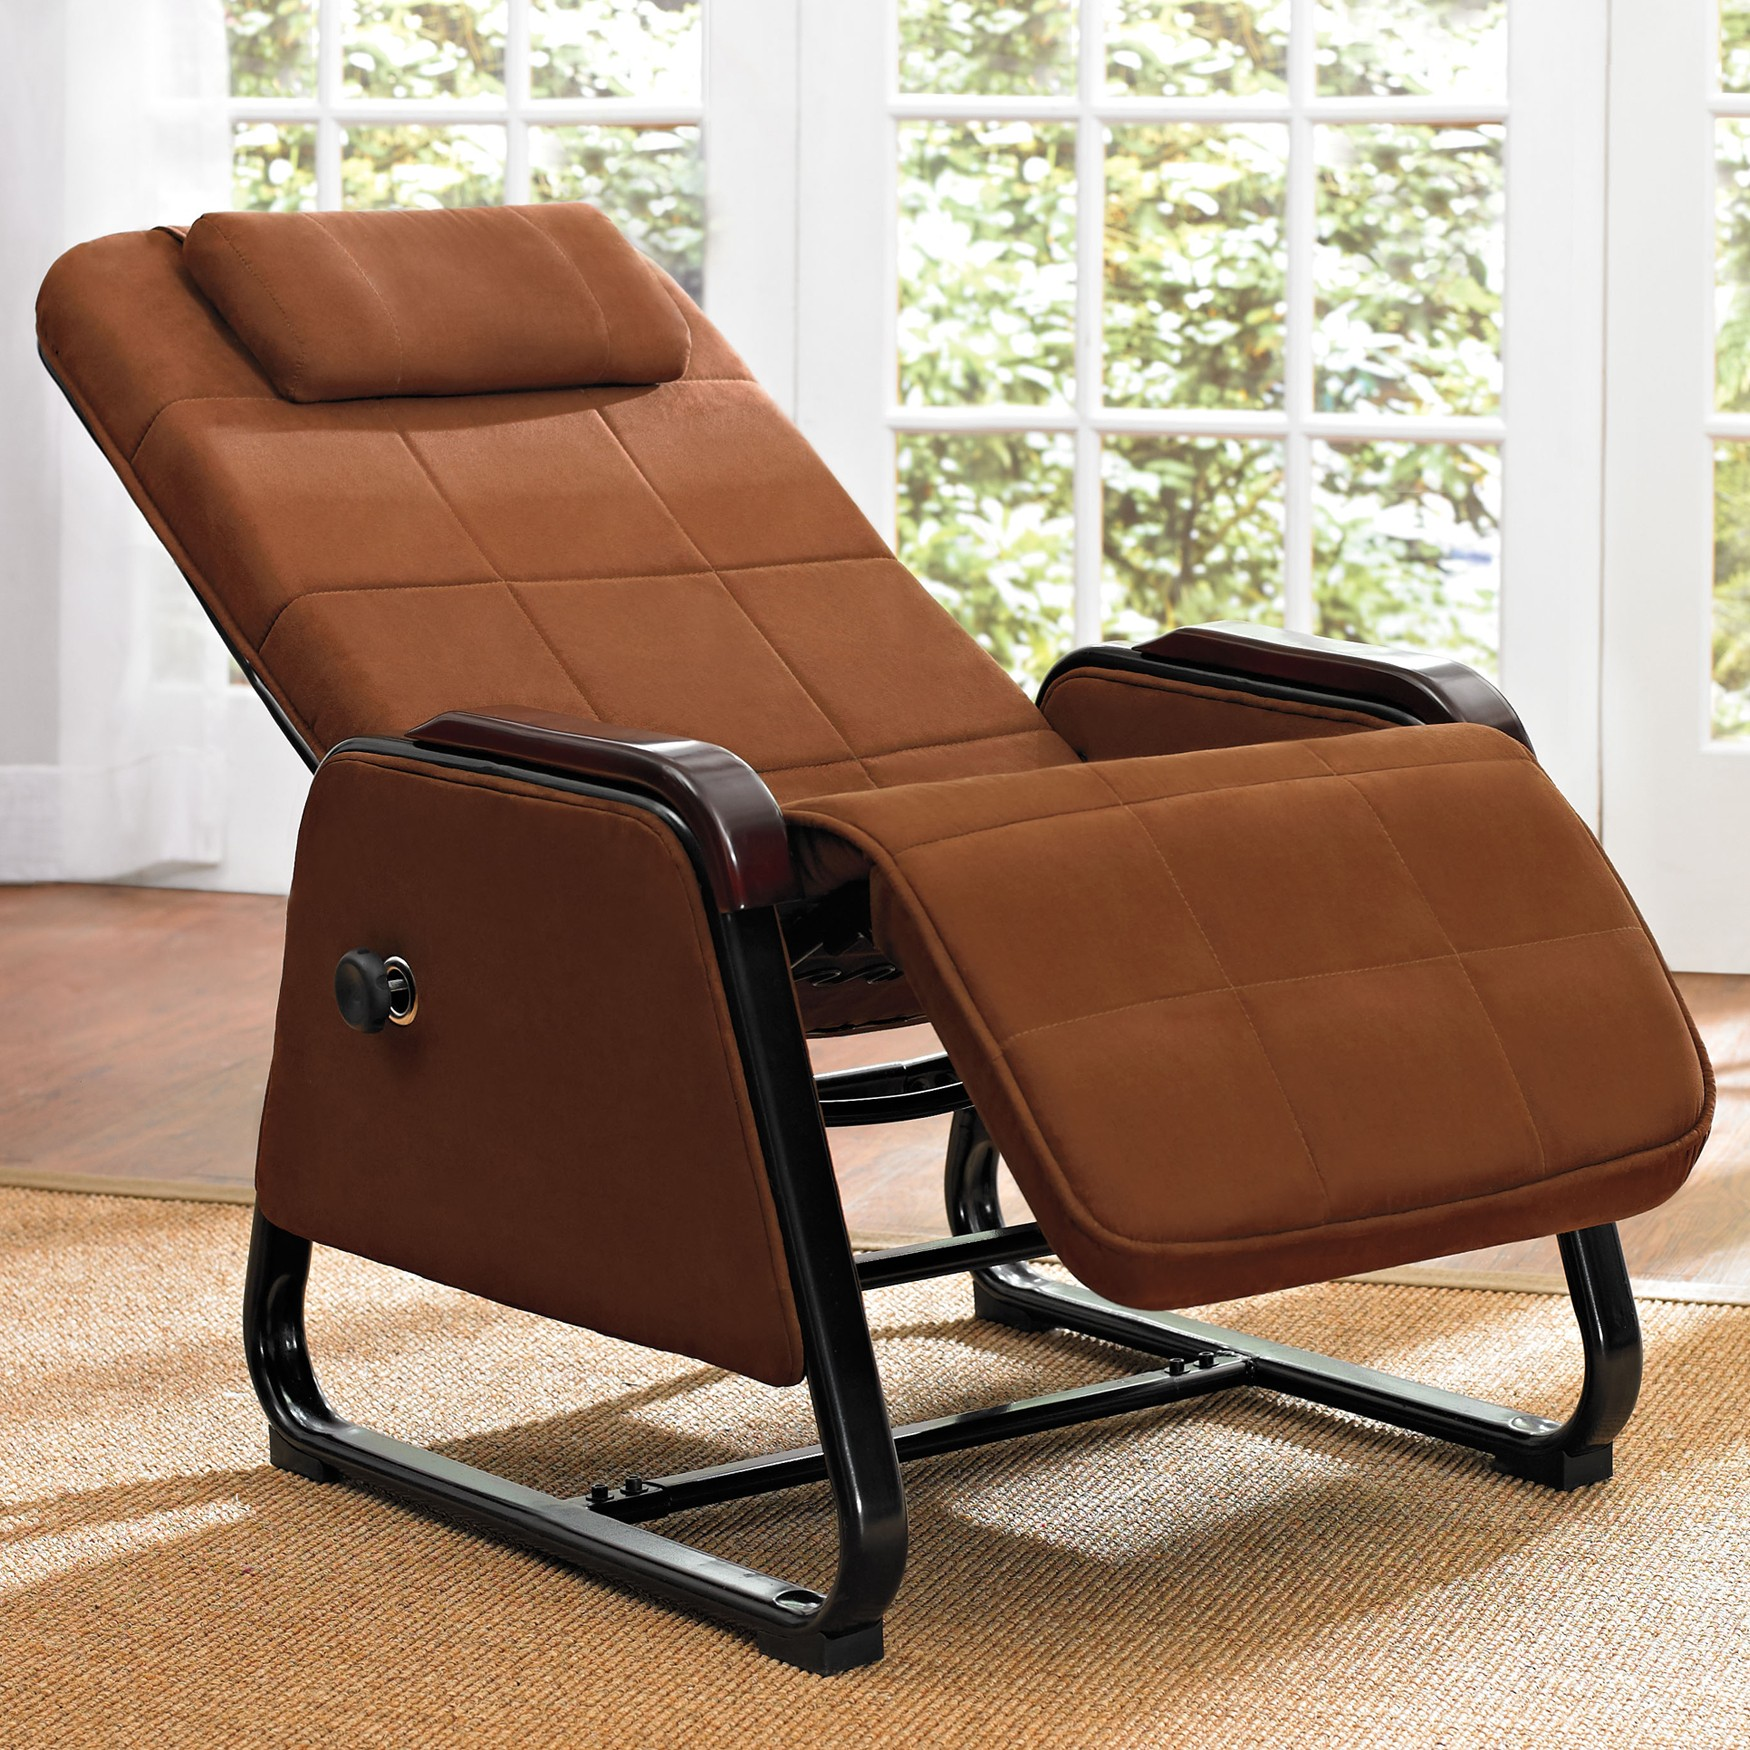 Beau Indoor Zero Gravity Chair